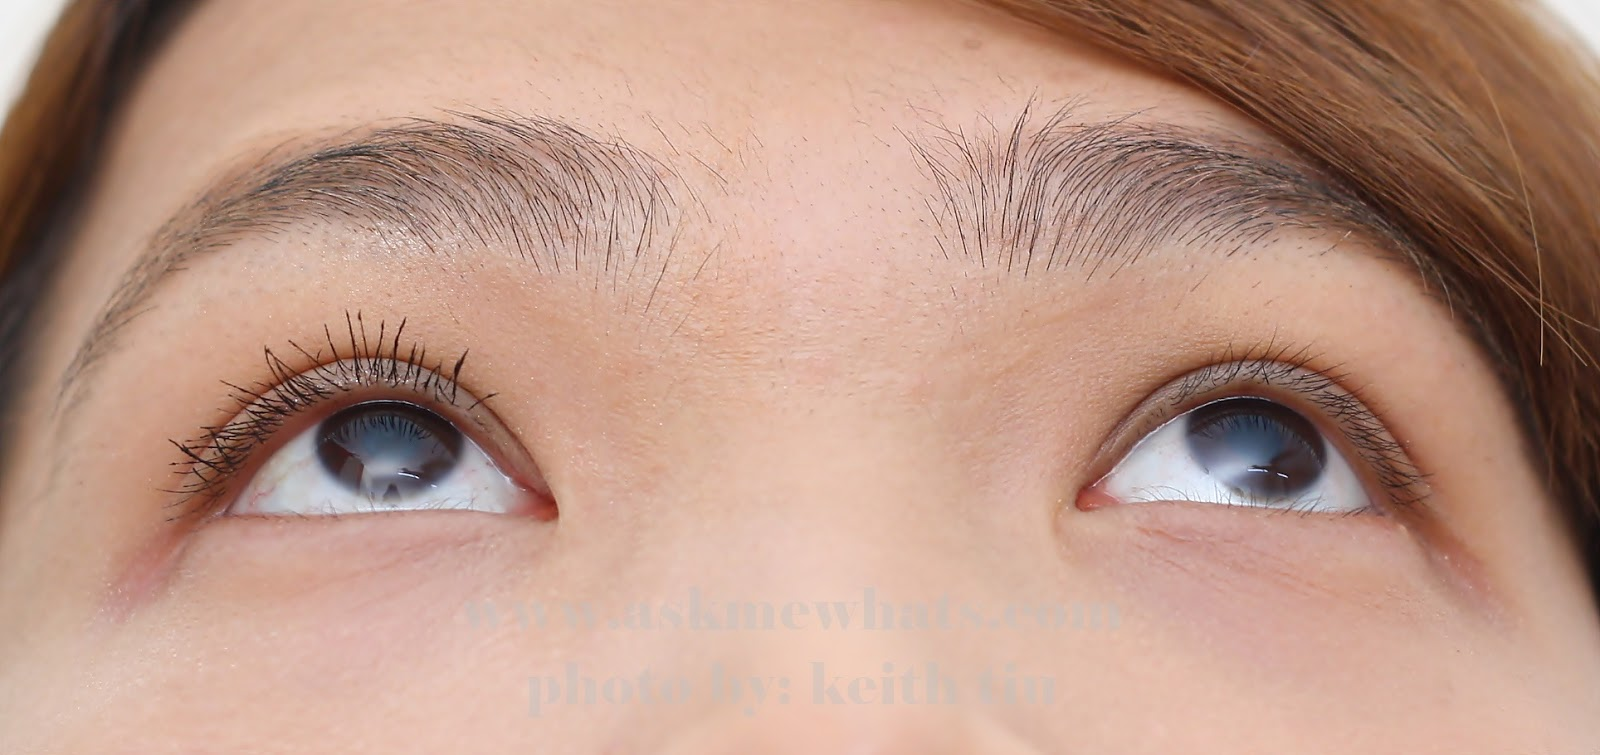 5191544a482 ... Benefit Roller Lash mascara against bare lashes (right facing you).  Front view, there isn't much CURL power seen because my lashes are too  short to see ...